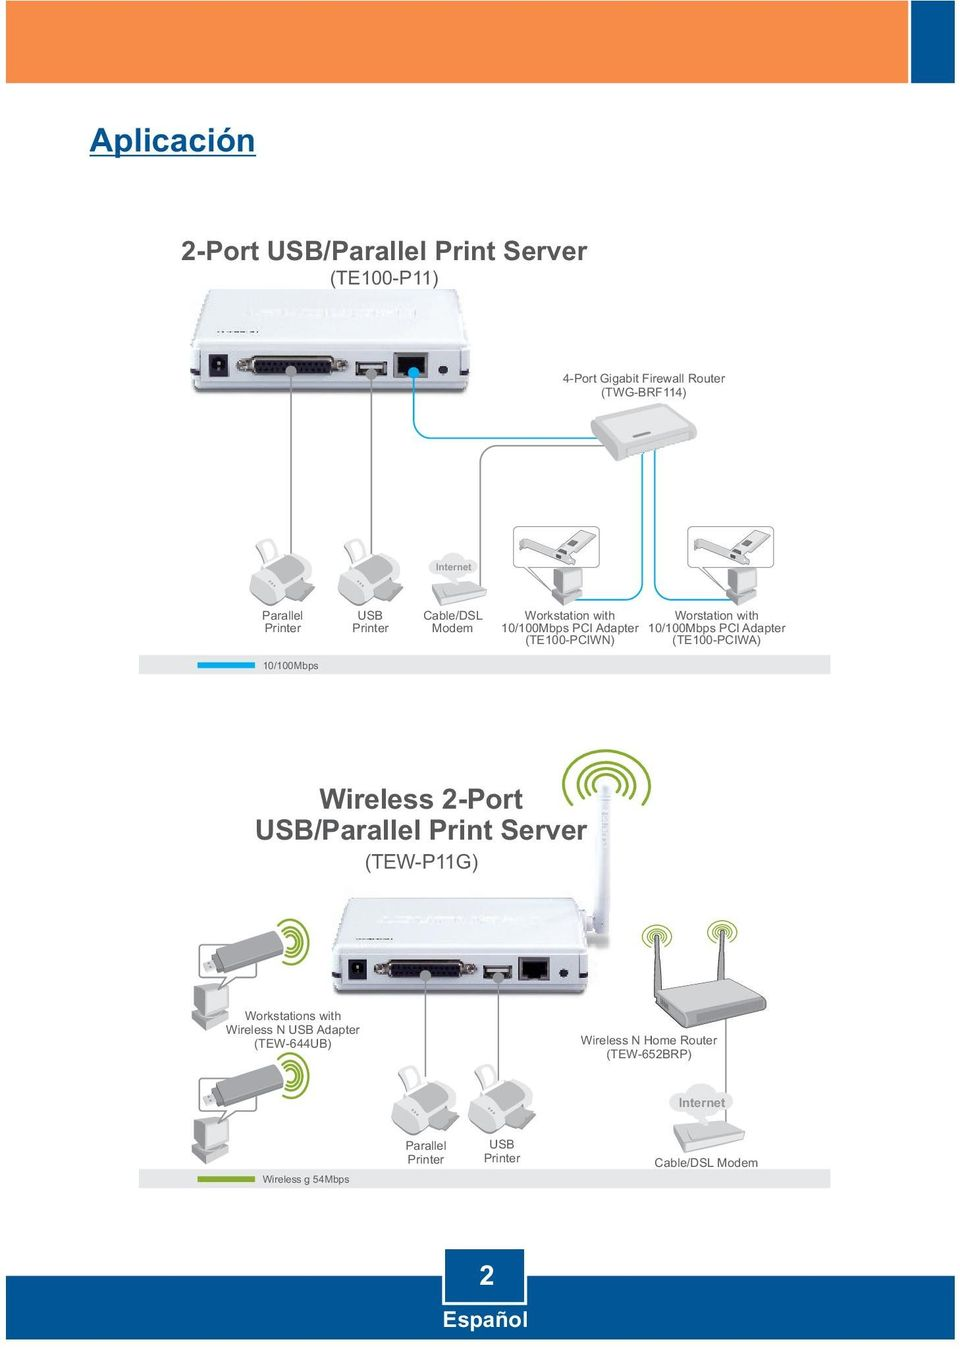 (TE100-PCIWN) (TE100-PCIWA) 10/100Mbps Wireless 2-Port USB/Parallel Print Server (TEW-P11G) Workstations with Wireless N